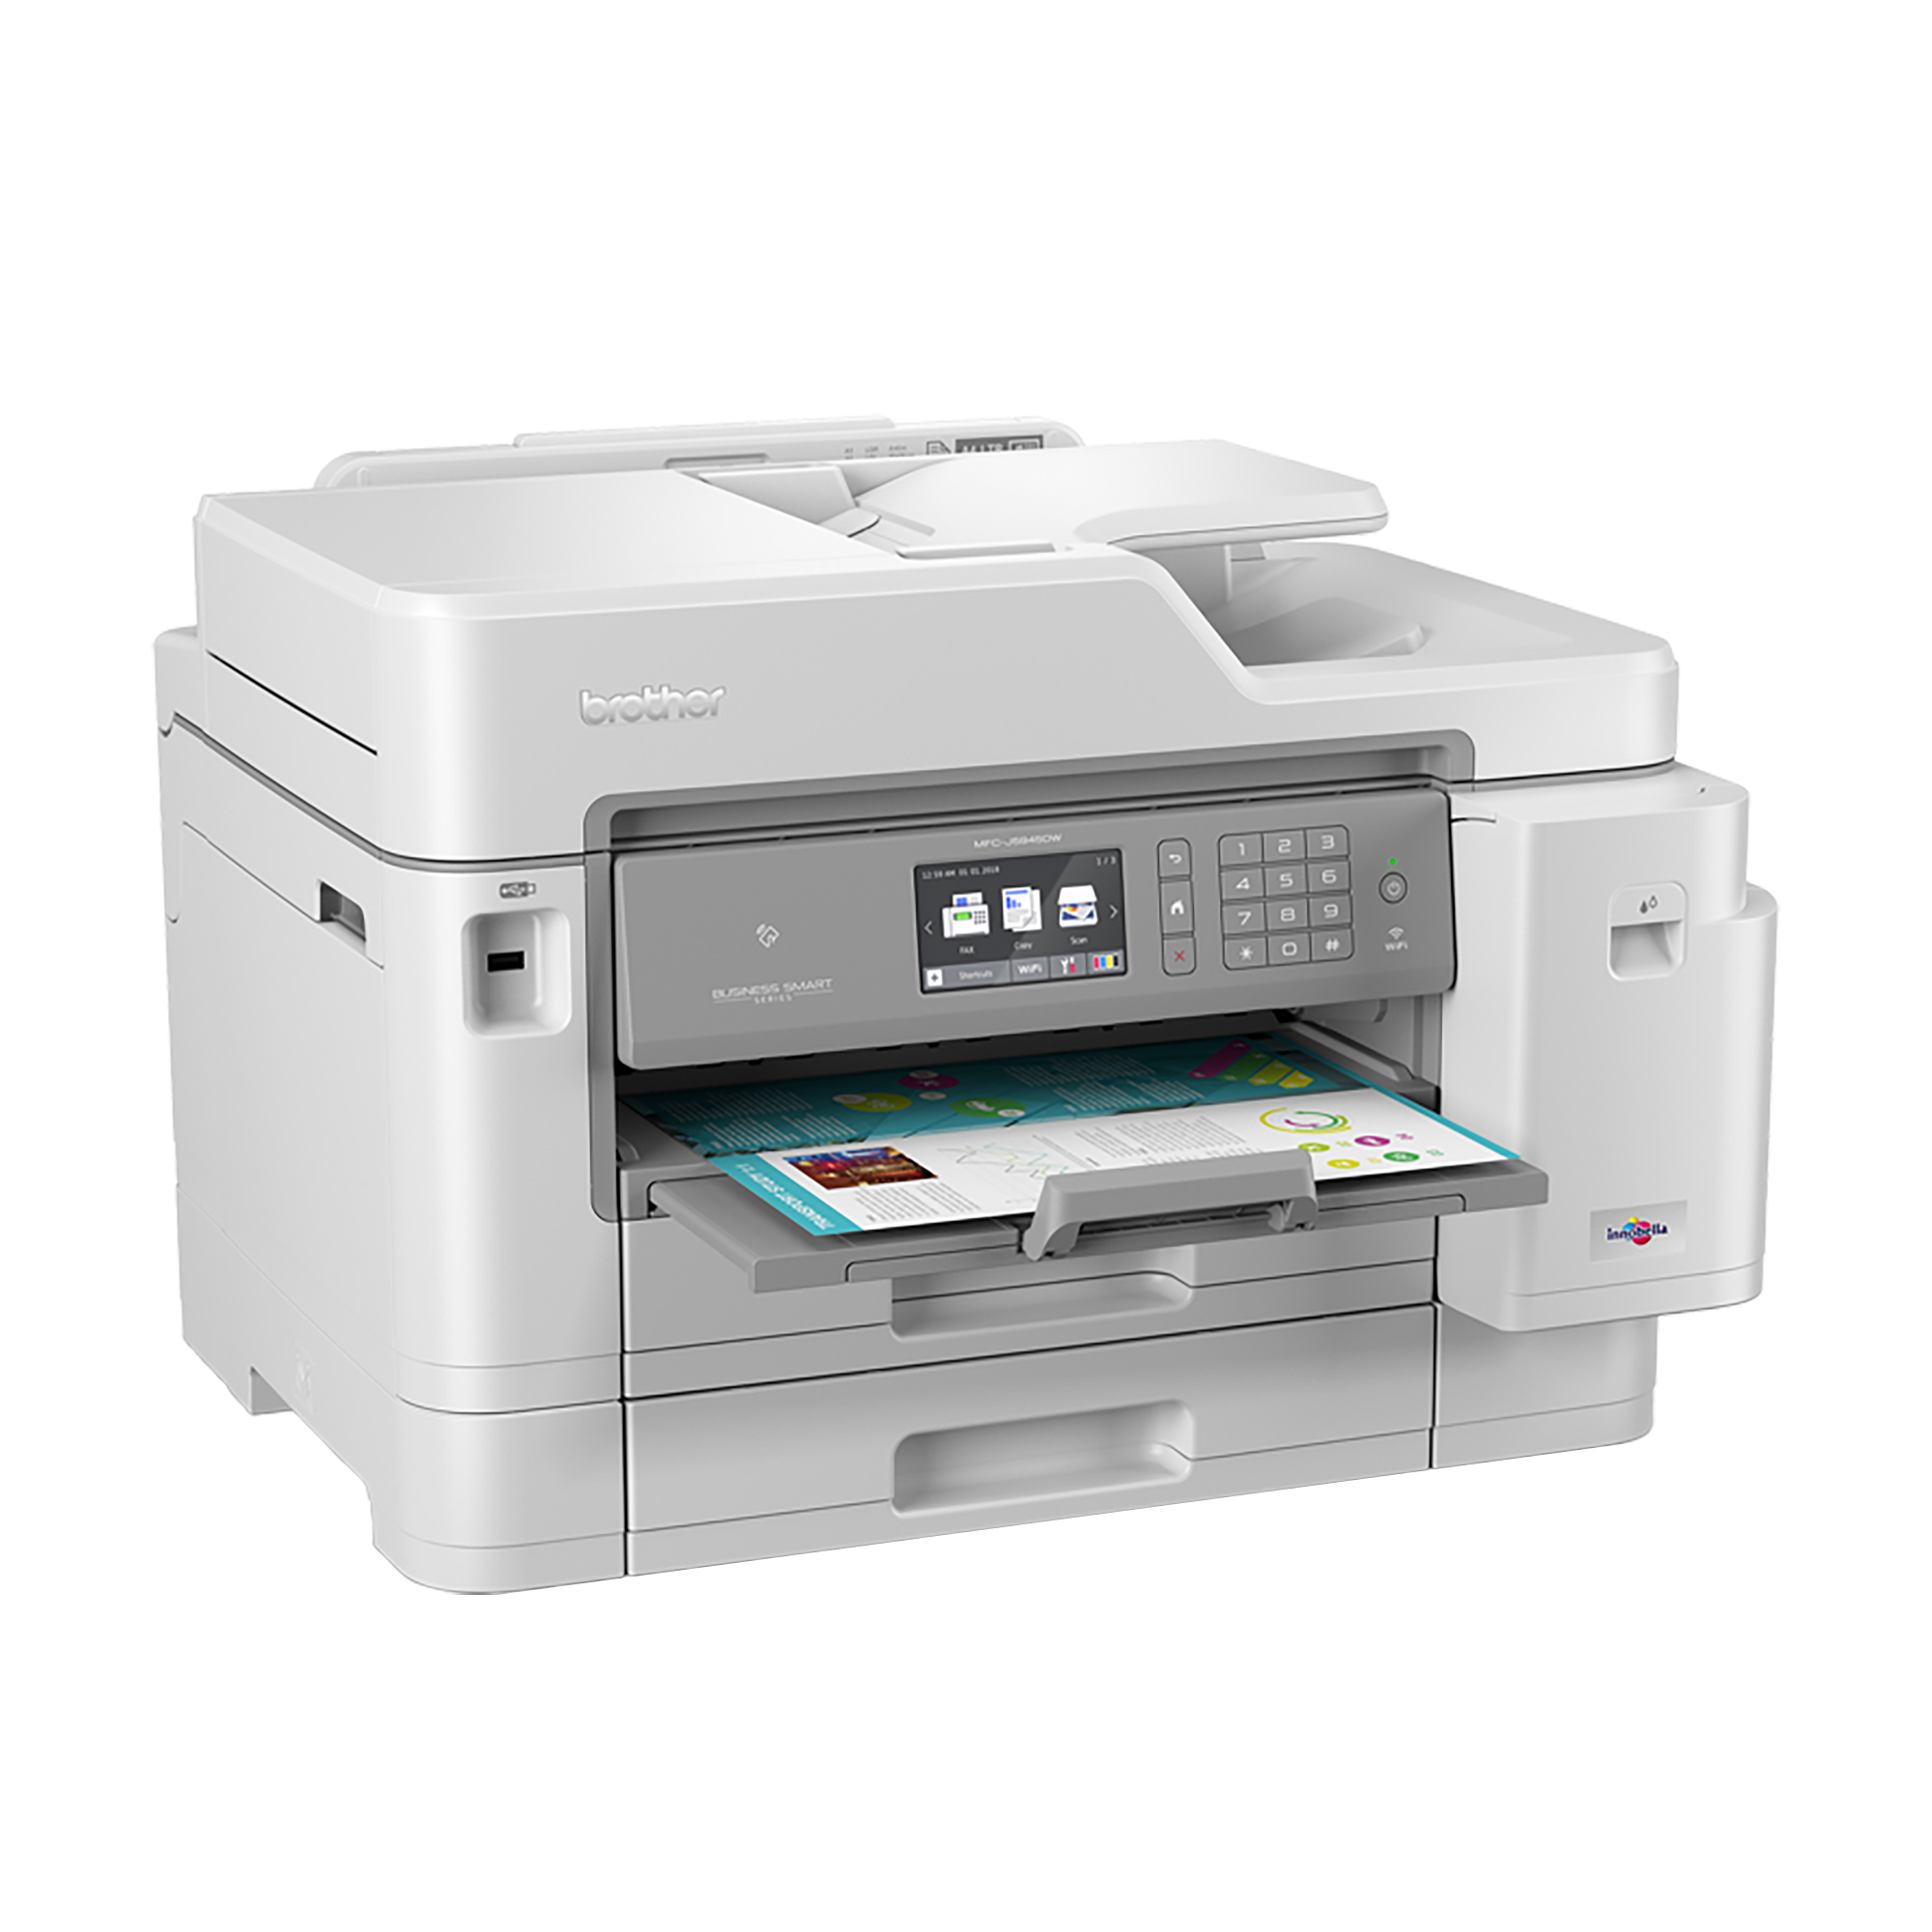 Brother MFC-J5945DW Inkjet Printer Multifunctional 4 in 1 35ppm Ref MFC-J5945DW